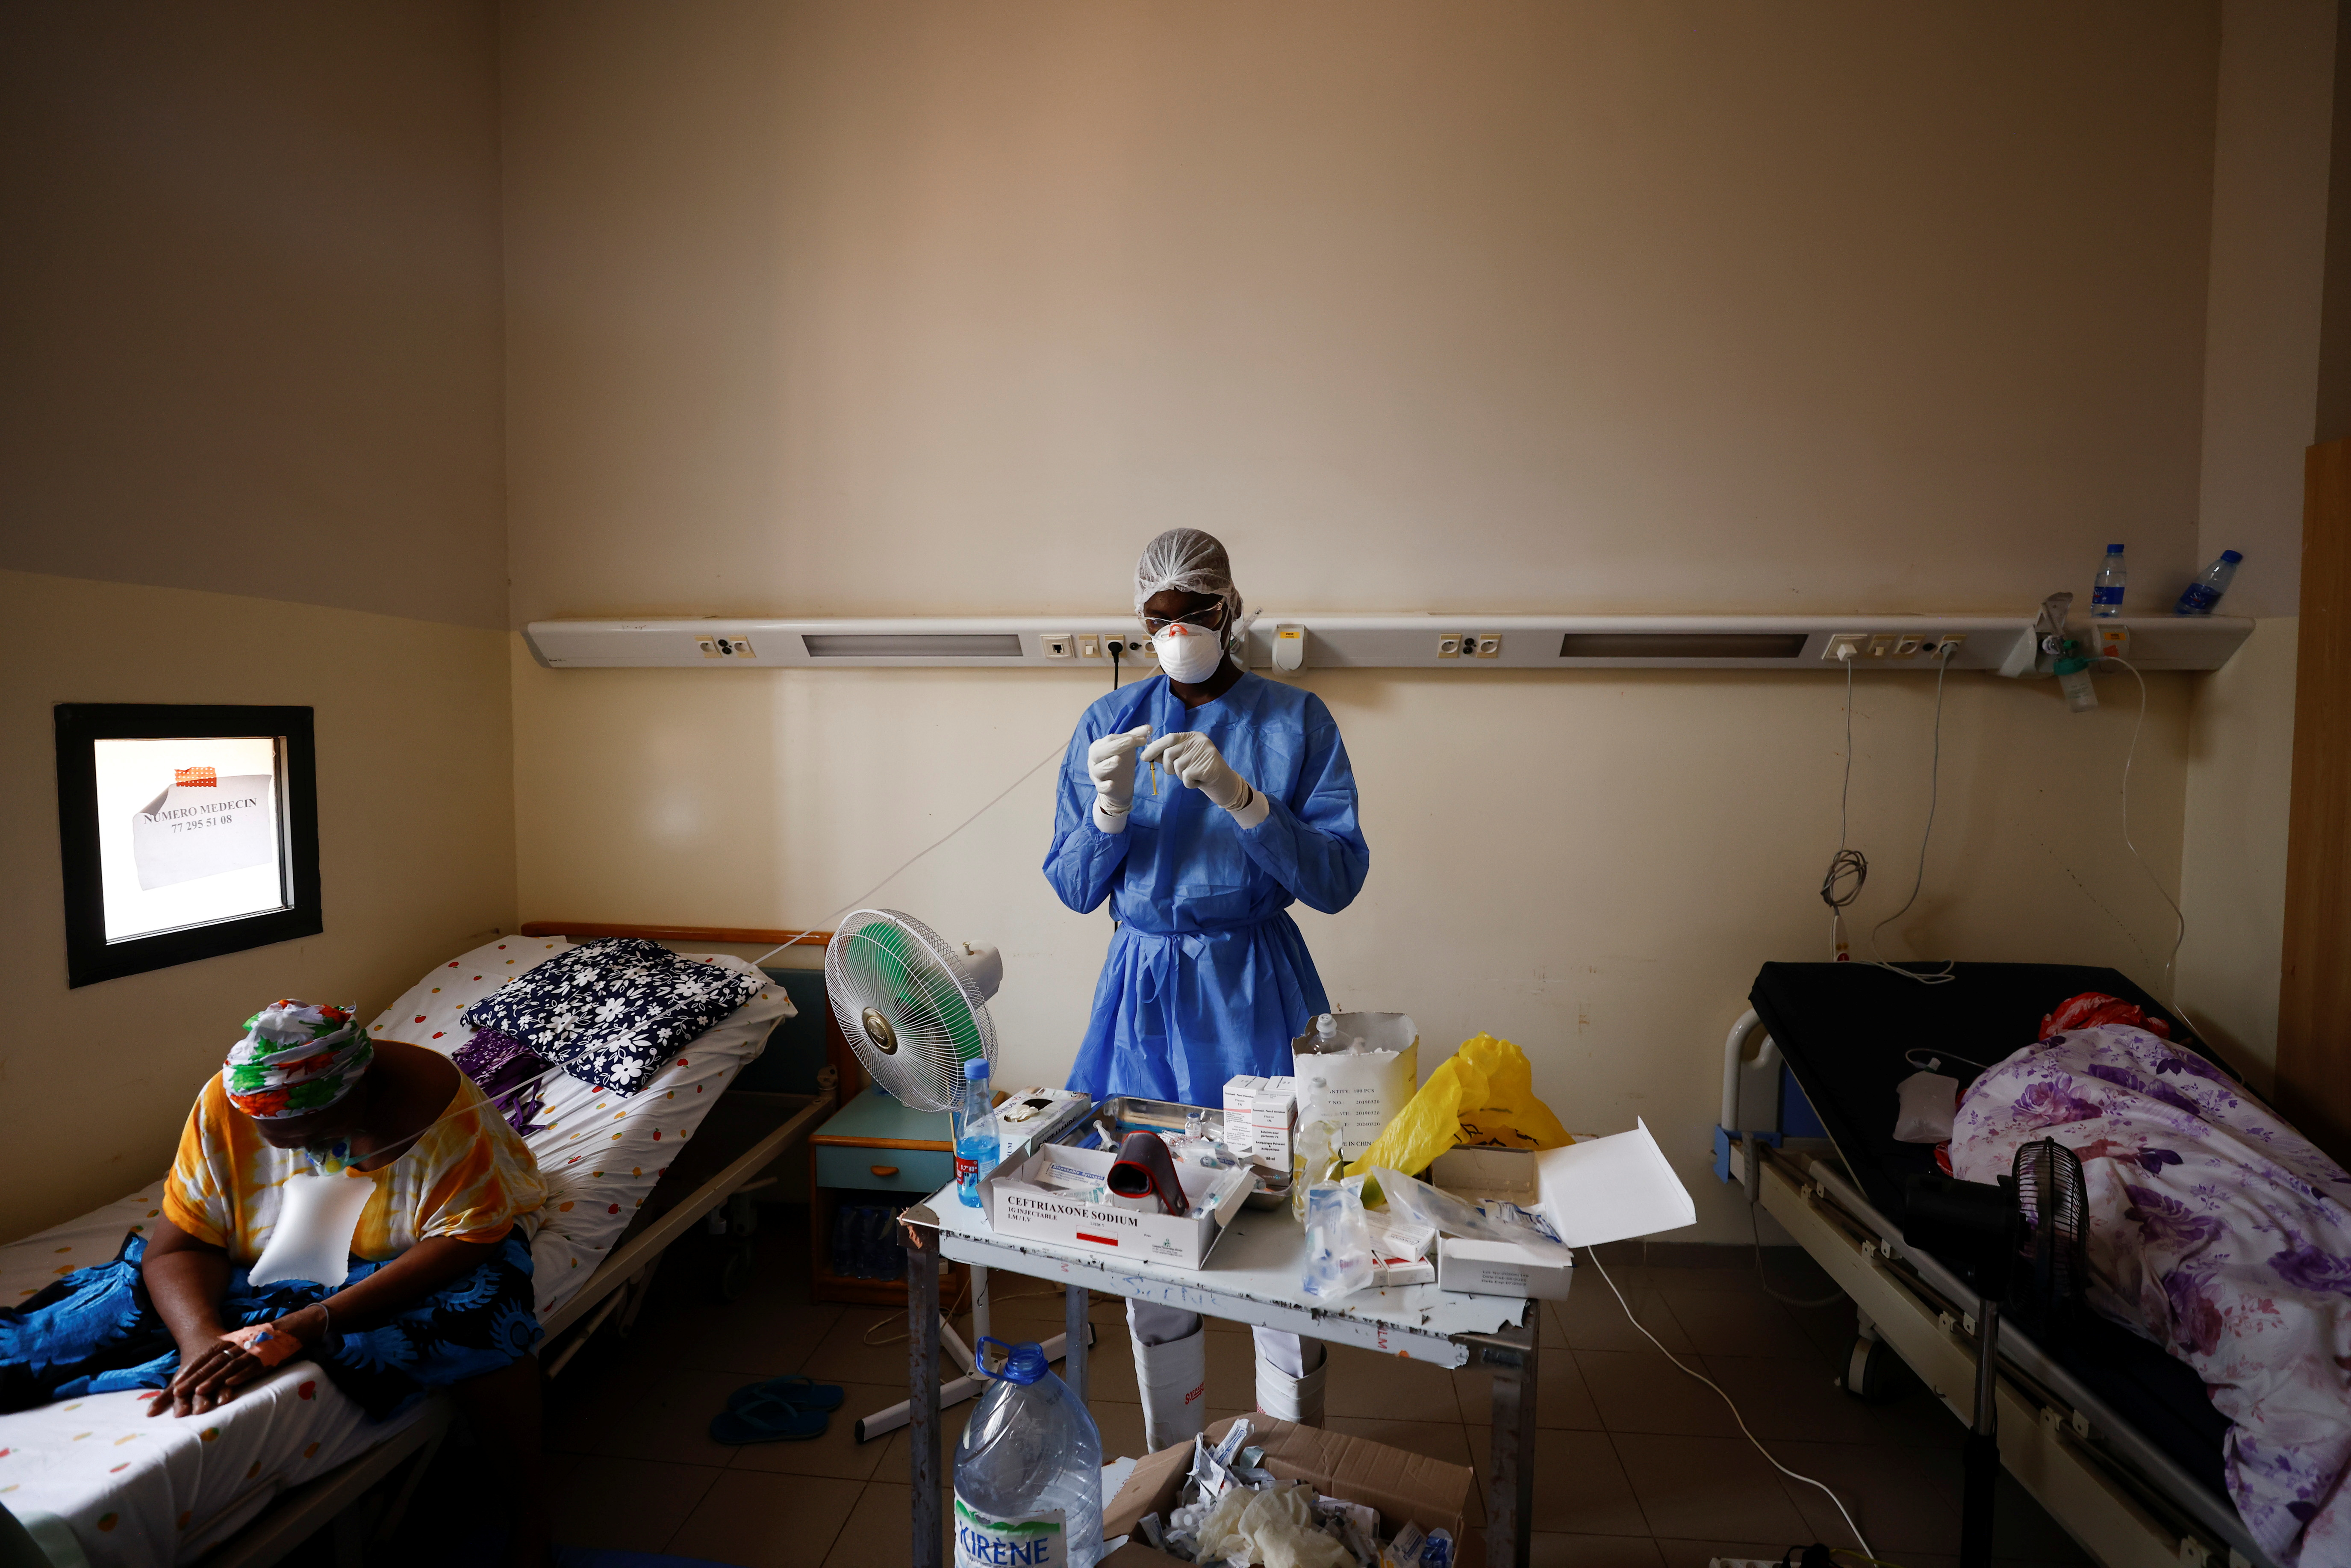 Nurse Ibrahima Toumane (29) prepares to treat patients who are suffering from the coronavirus disease (COVID-19), in the infectious diseases department of Dalal Jamm hospital, as Senegal records more COVID-19 deaths, Dakar, Senegal, August 5, 2021.  REUTERS/Zohra Bensemra